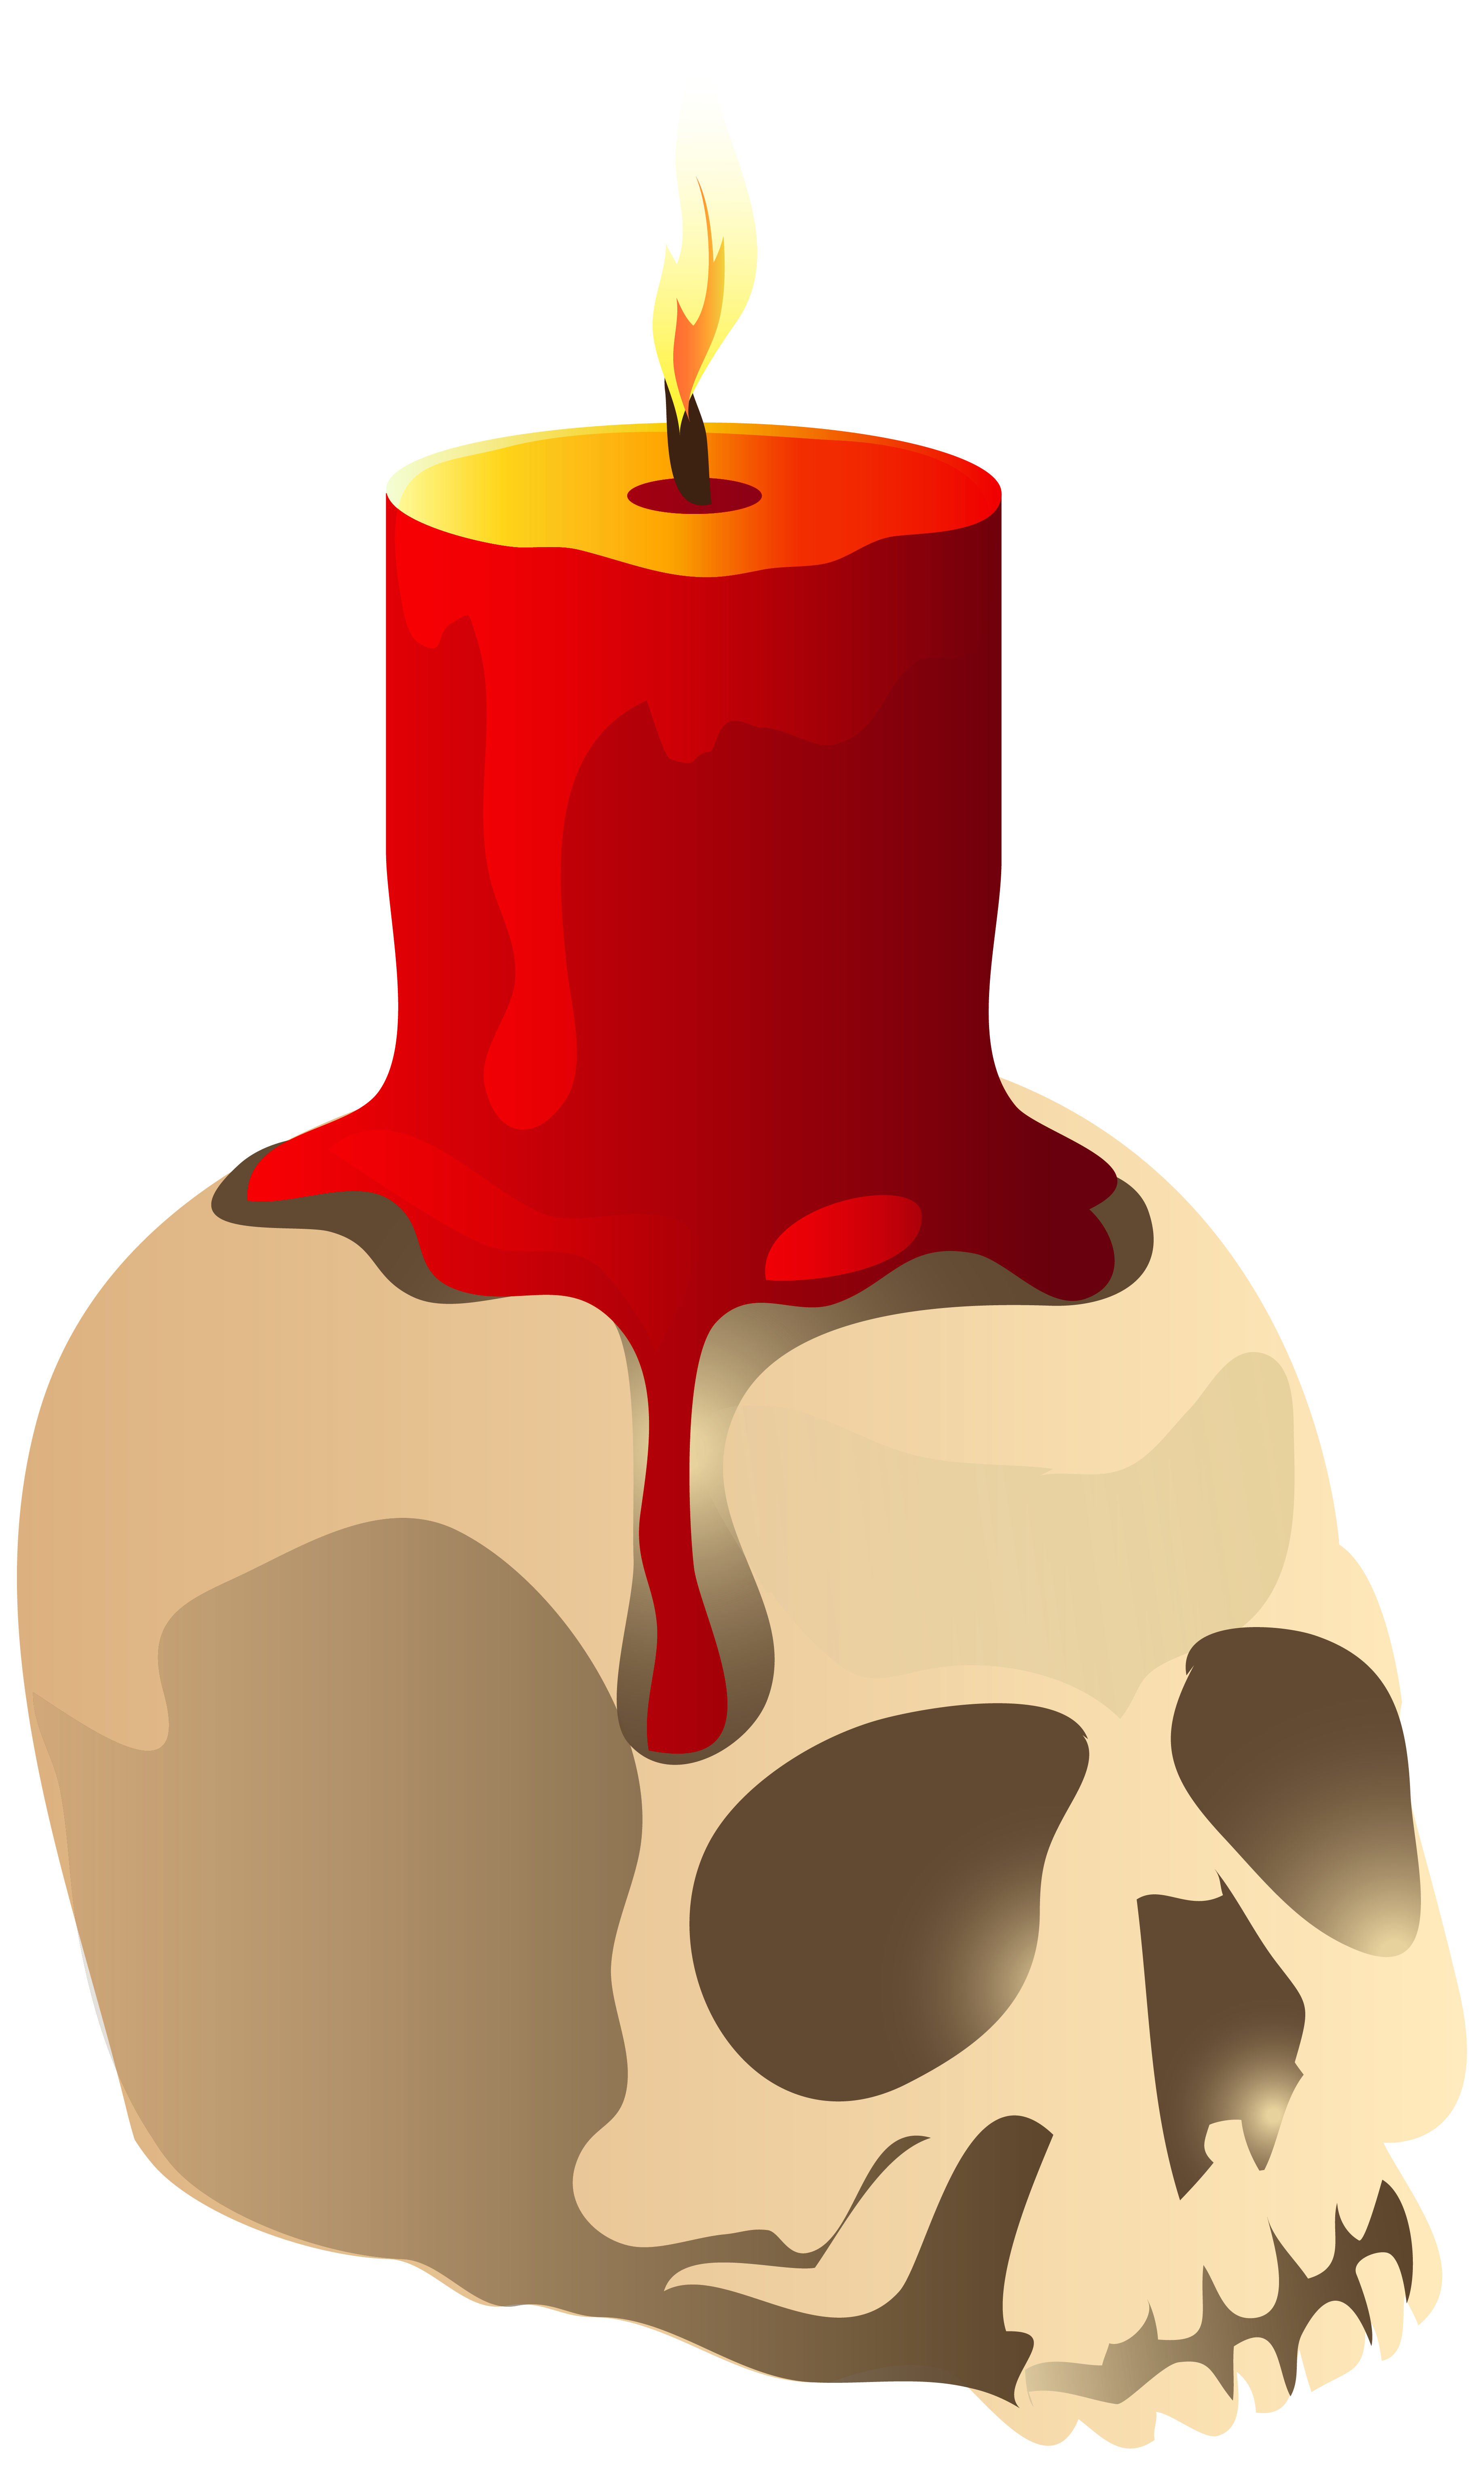 Clipart png candle. Halloween skull image gallery